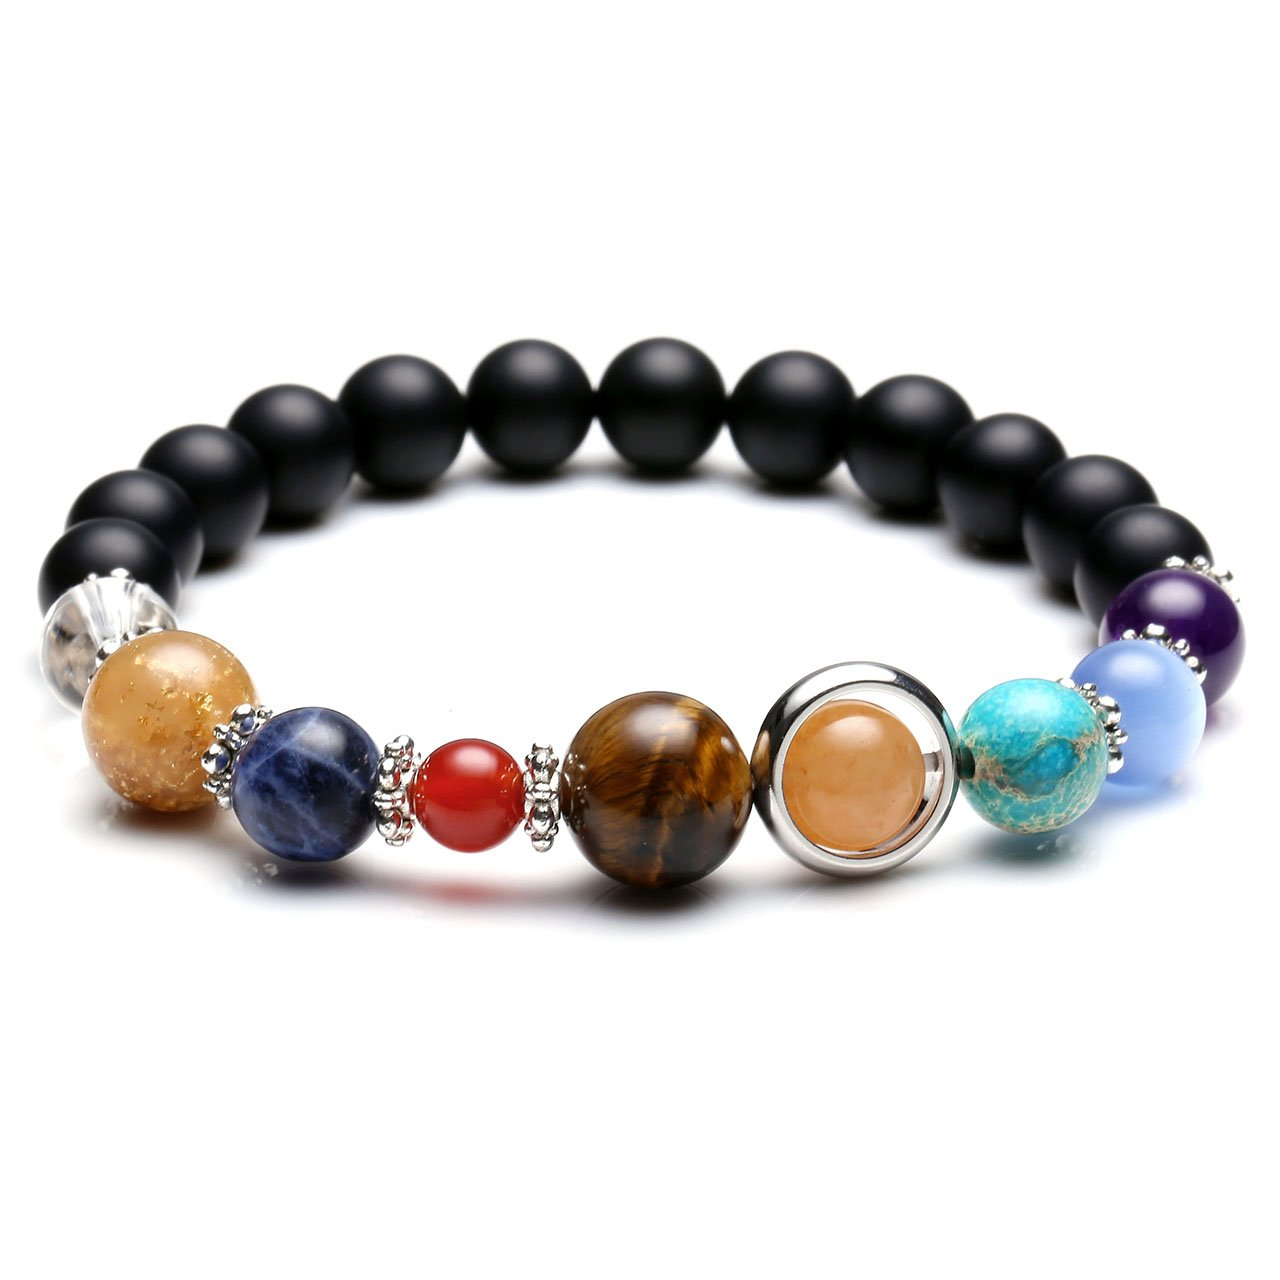 bcf3e85bcb Crystal Tears Natural Reiki Healing Gemstone Bead Solar System Adjustable  Bracelet Universe Galaxy The Nine Planets Guardian Star (Scrub Black  Agate)  ...